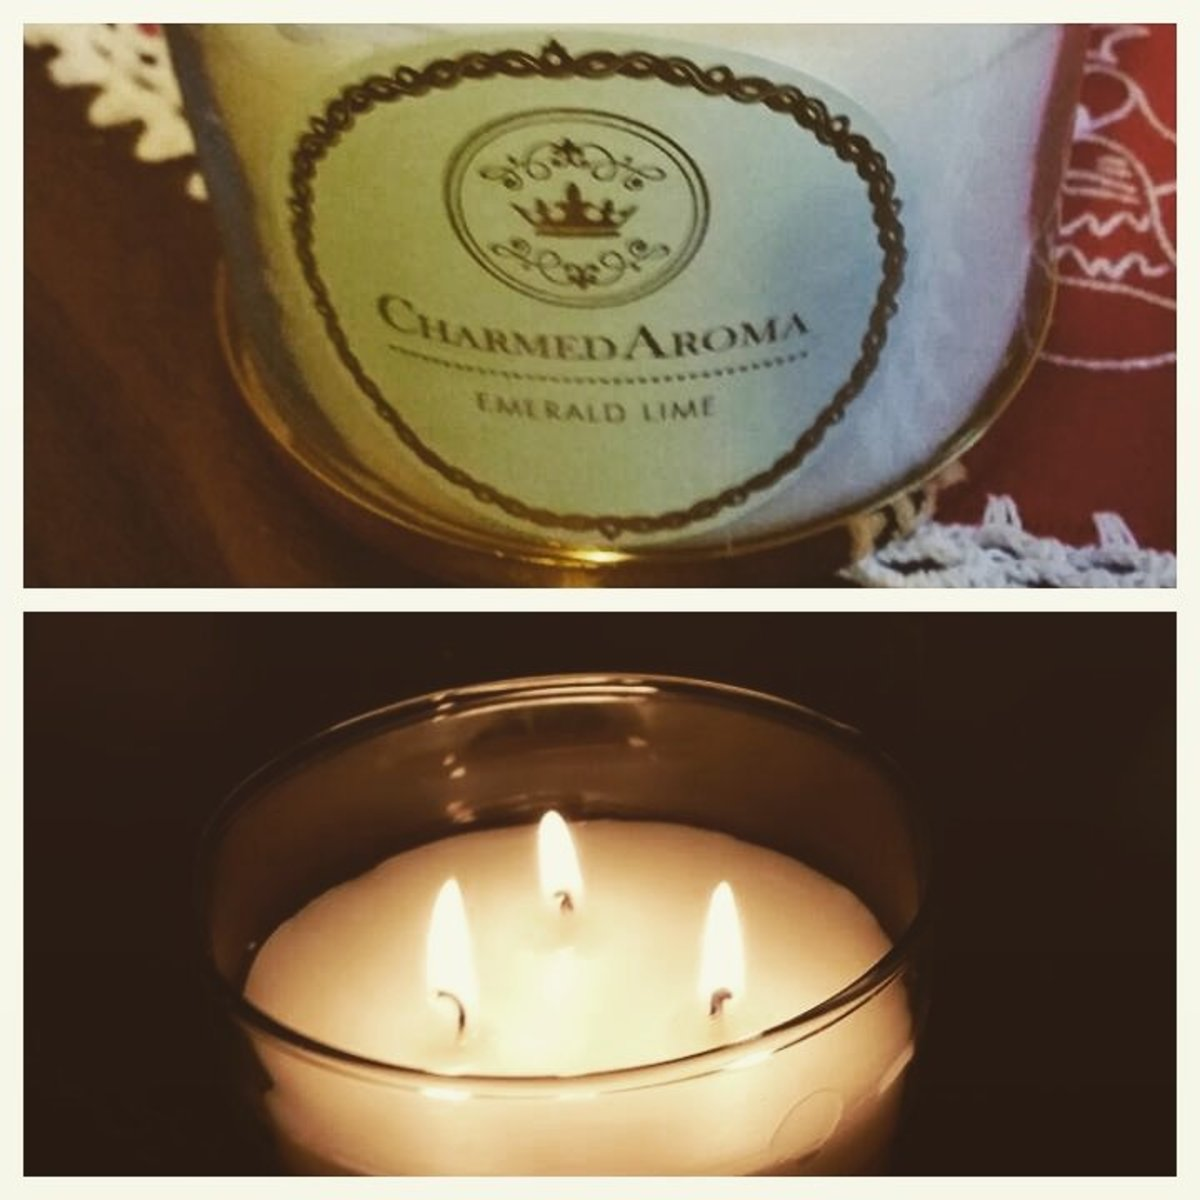 My charmed aroma candle